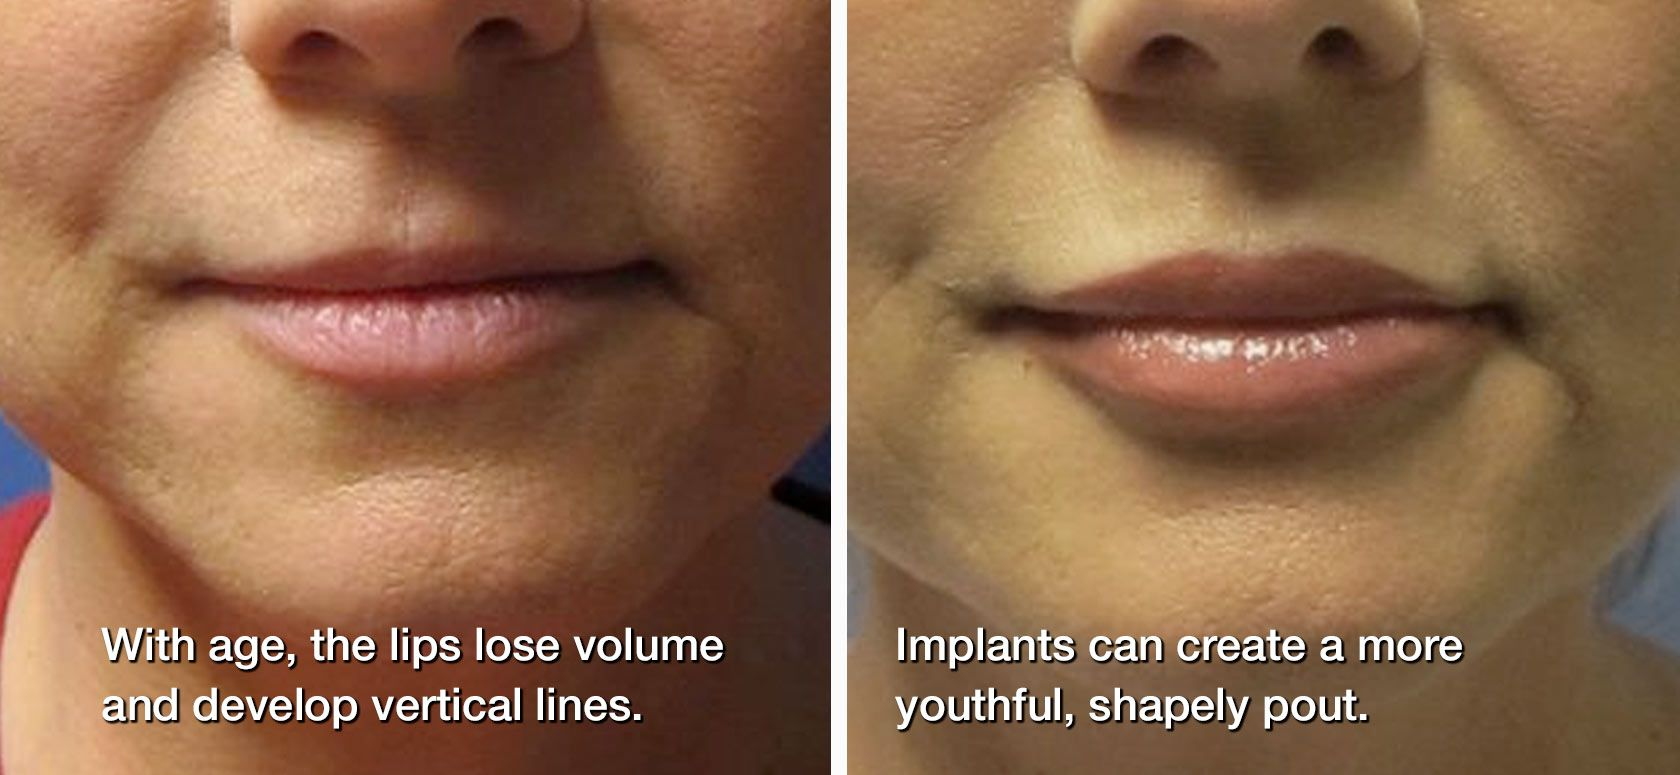 Before and after: lip implants